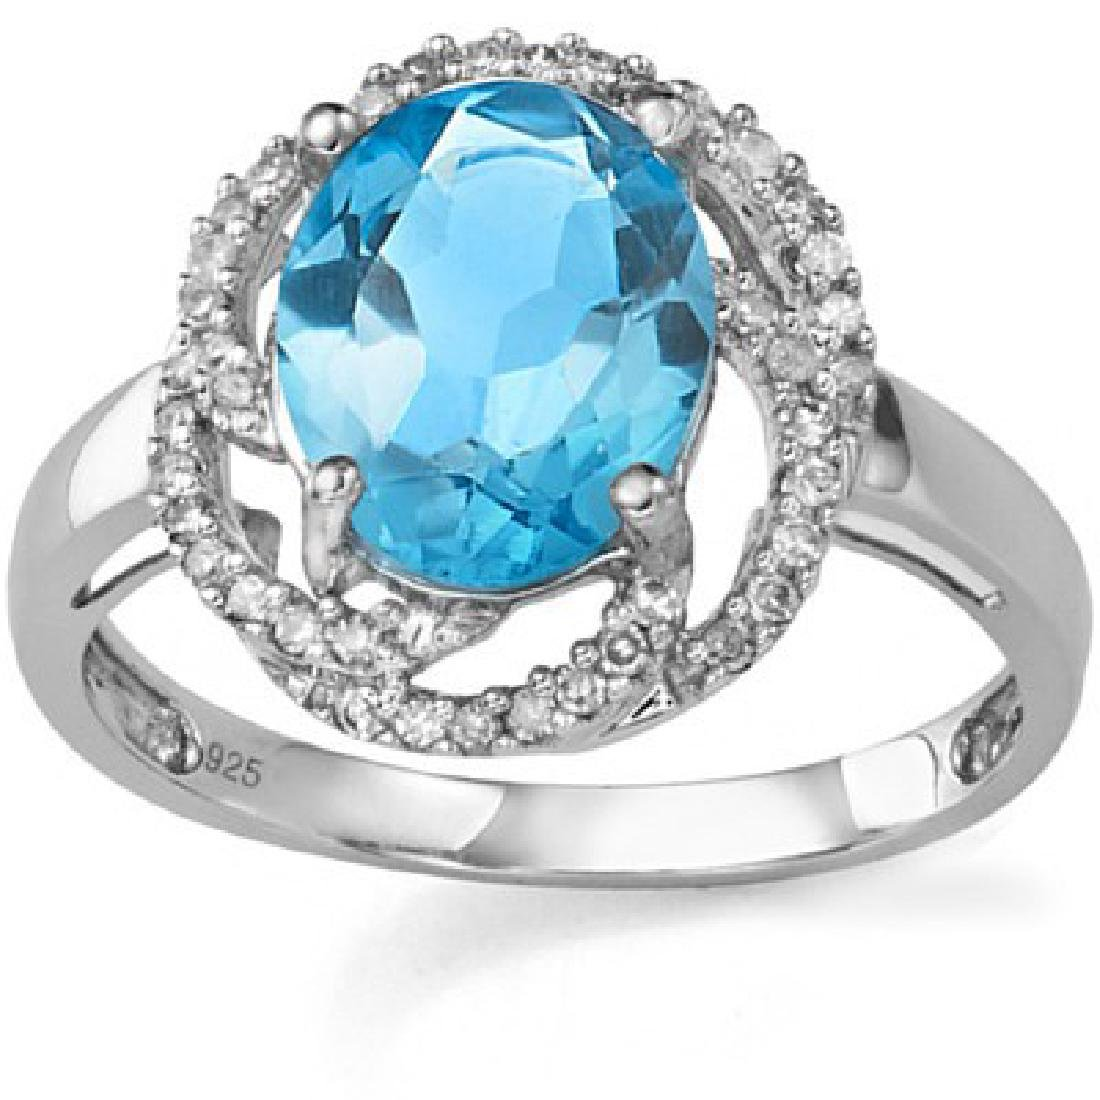 3.16 CT BLUE TOPAZ & 2 PCS WHITE DIAMOND PLATINUM OVER